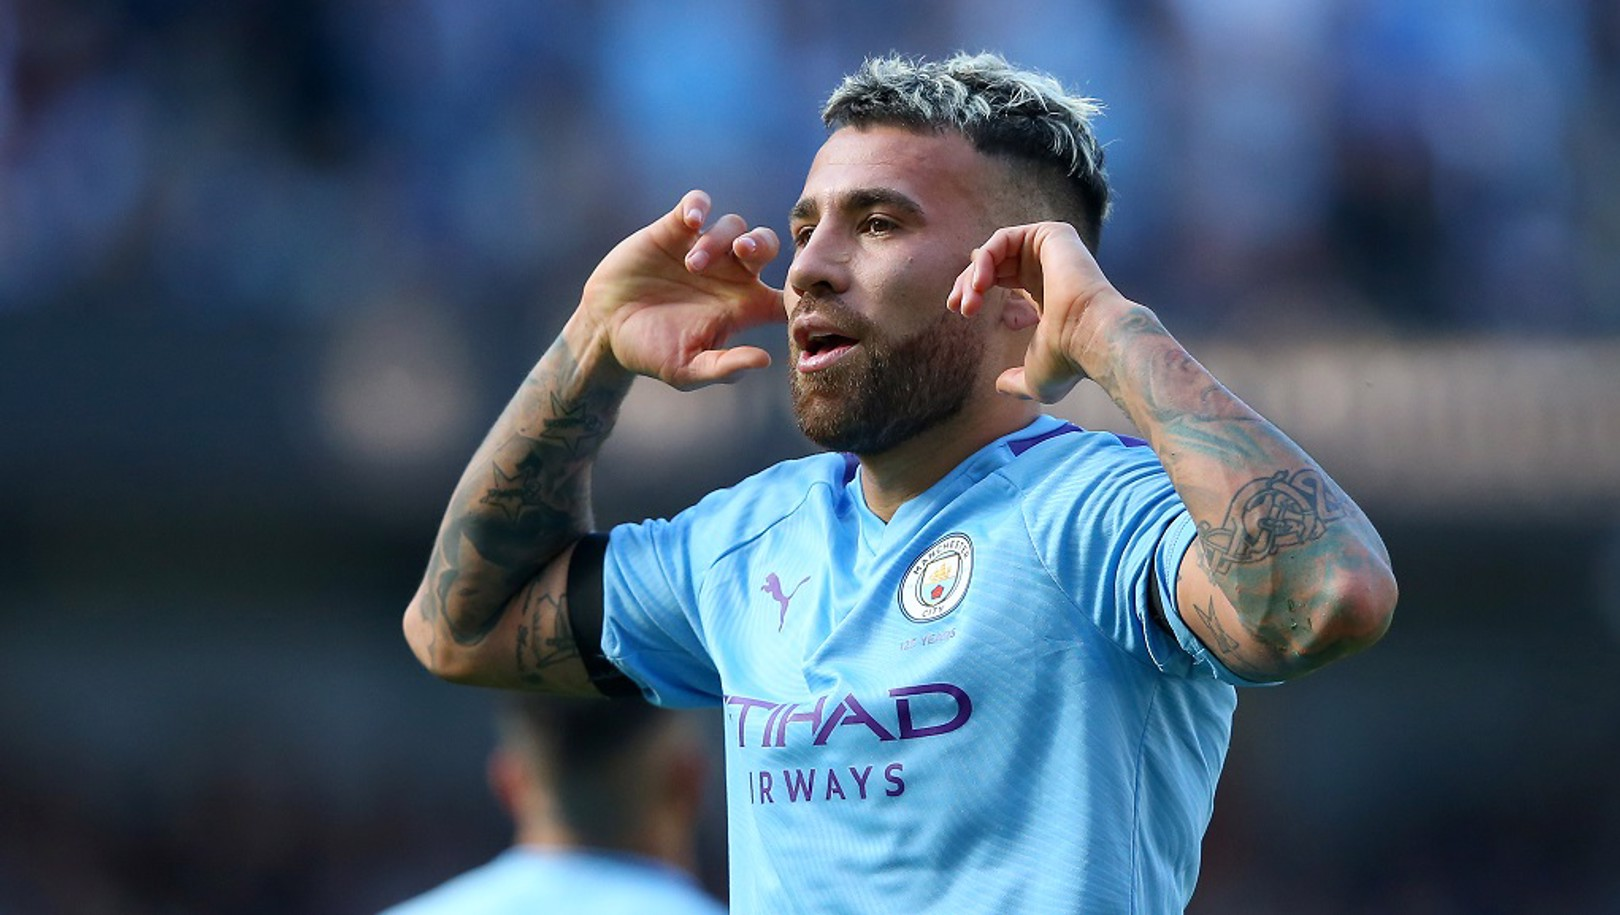 'All going to plan' says Otamendi